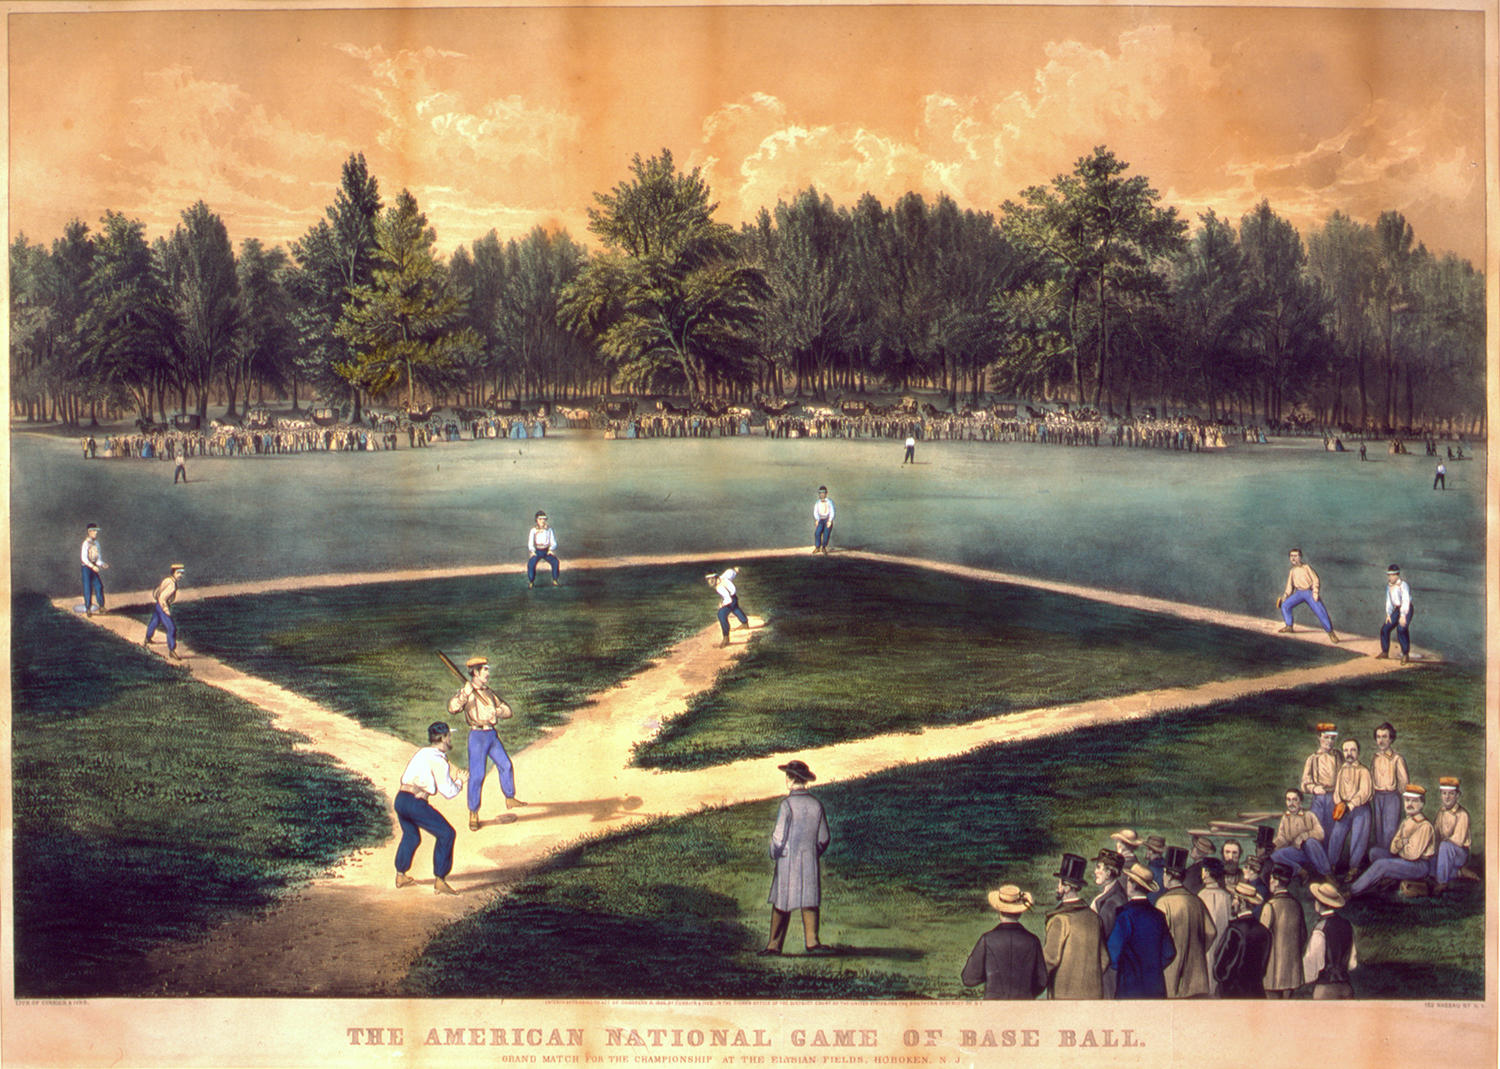 By the 1860s, Currier and Ives, among other lithograph companies, began manufacturing mass-produced prints, like this one of Elysian Fields, that used baseball as a major theme. This paved the way for the emergence of cartoons in the 1870s. (National Baseball Hall of Fame)